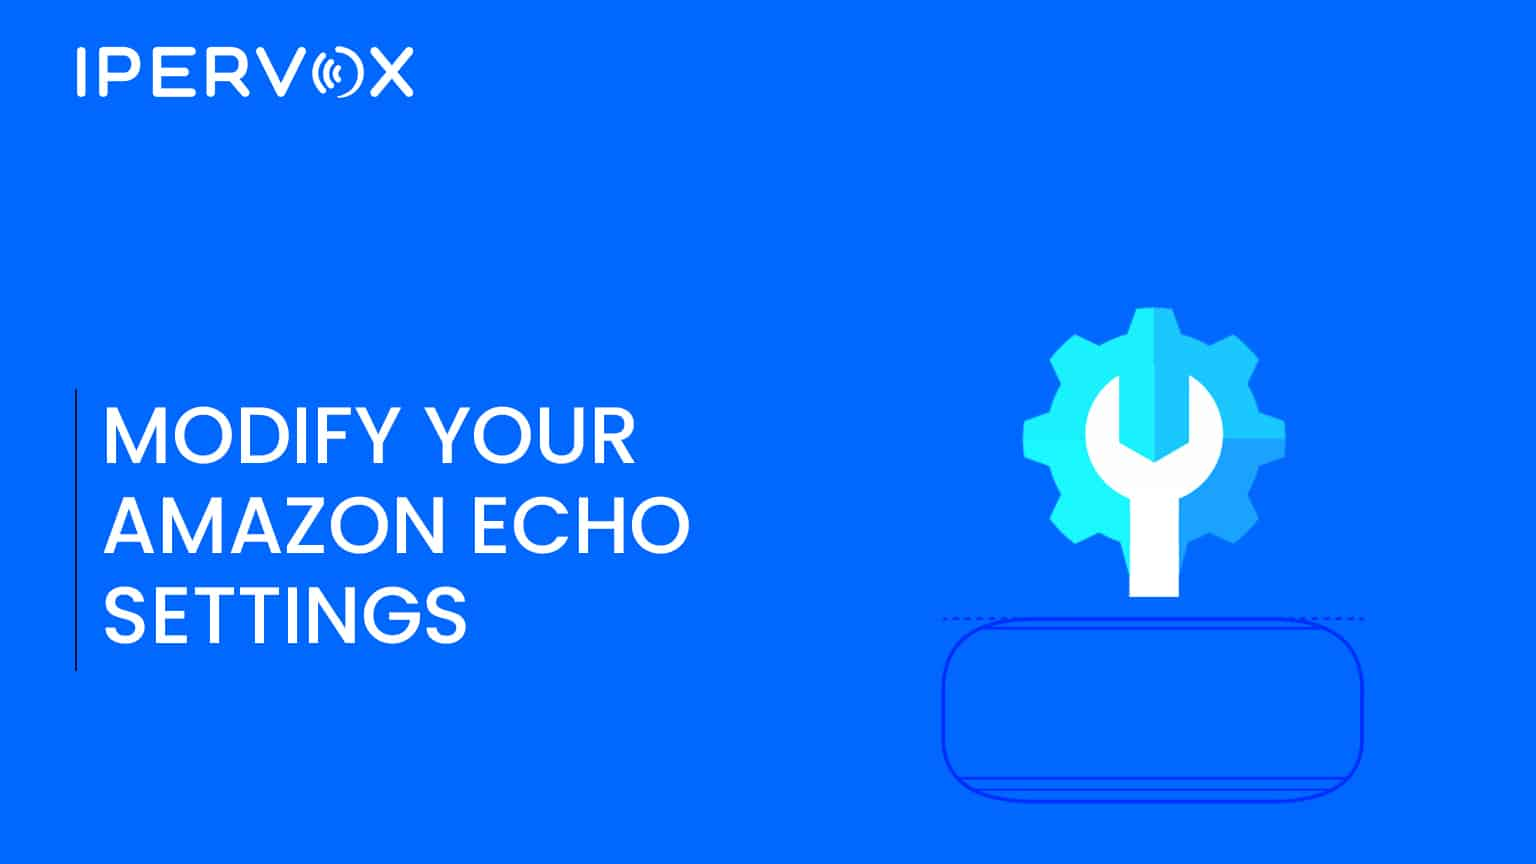 Modify your Amazon echo settings and an Amazon Echo dot